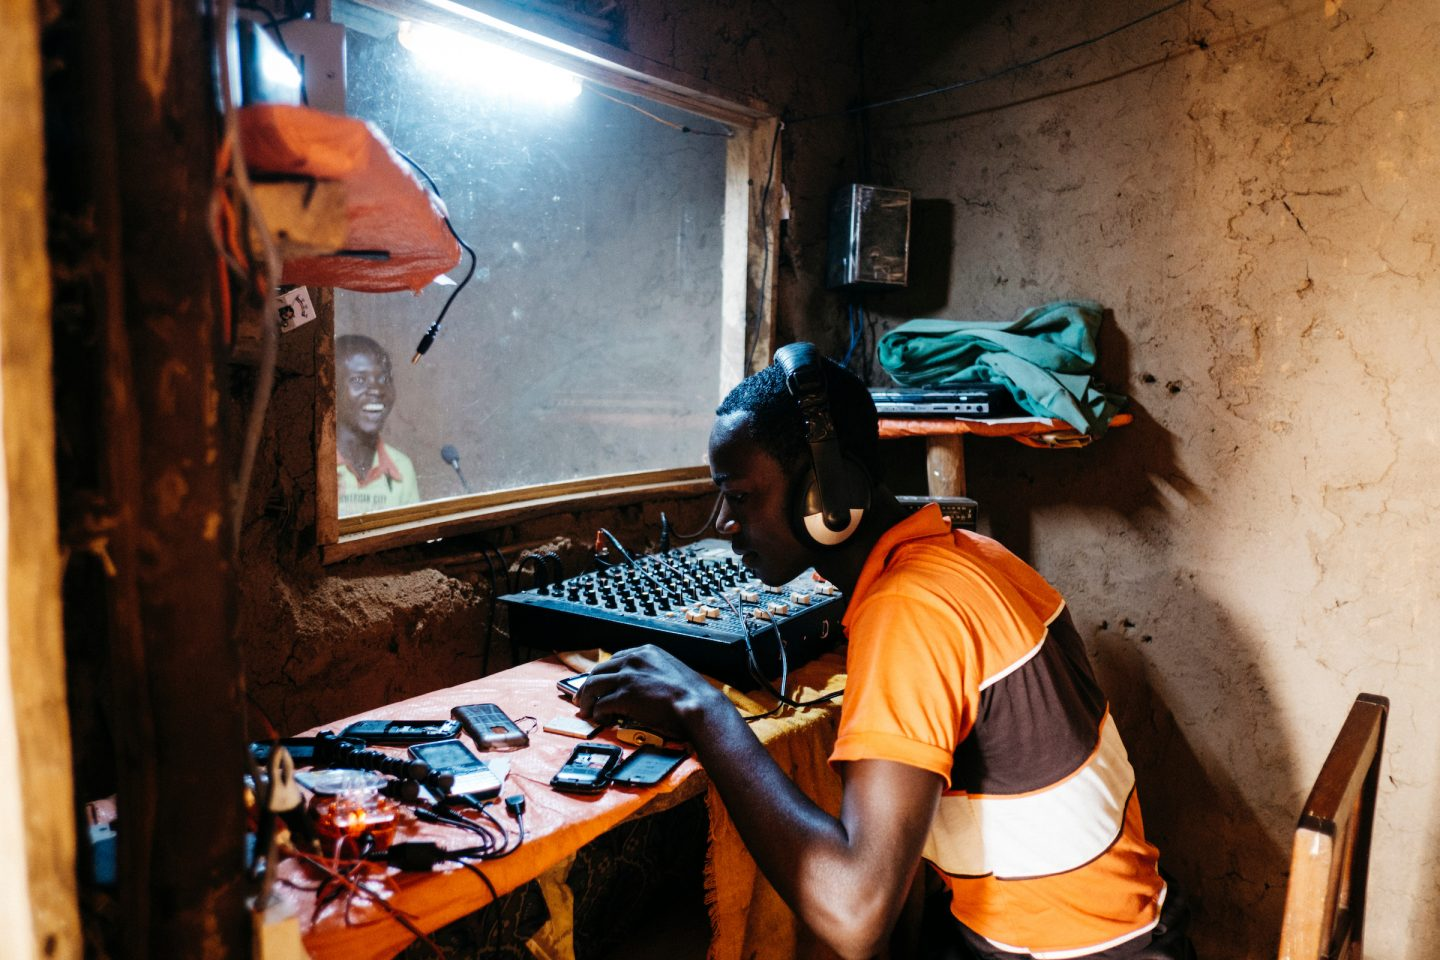 Nzanzu Nelson, 21, working at the Kabasha Community Development radio station in Beni, Democratic Republic of Congo. 5th July 2016. Photo by Greg Funnell